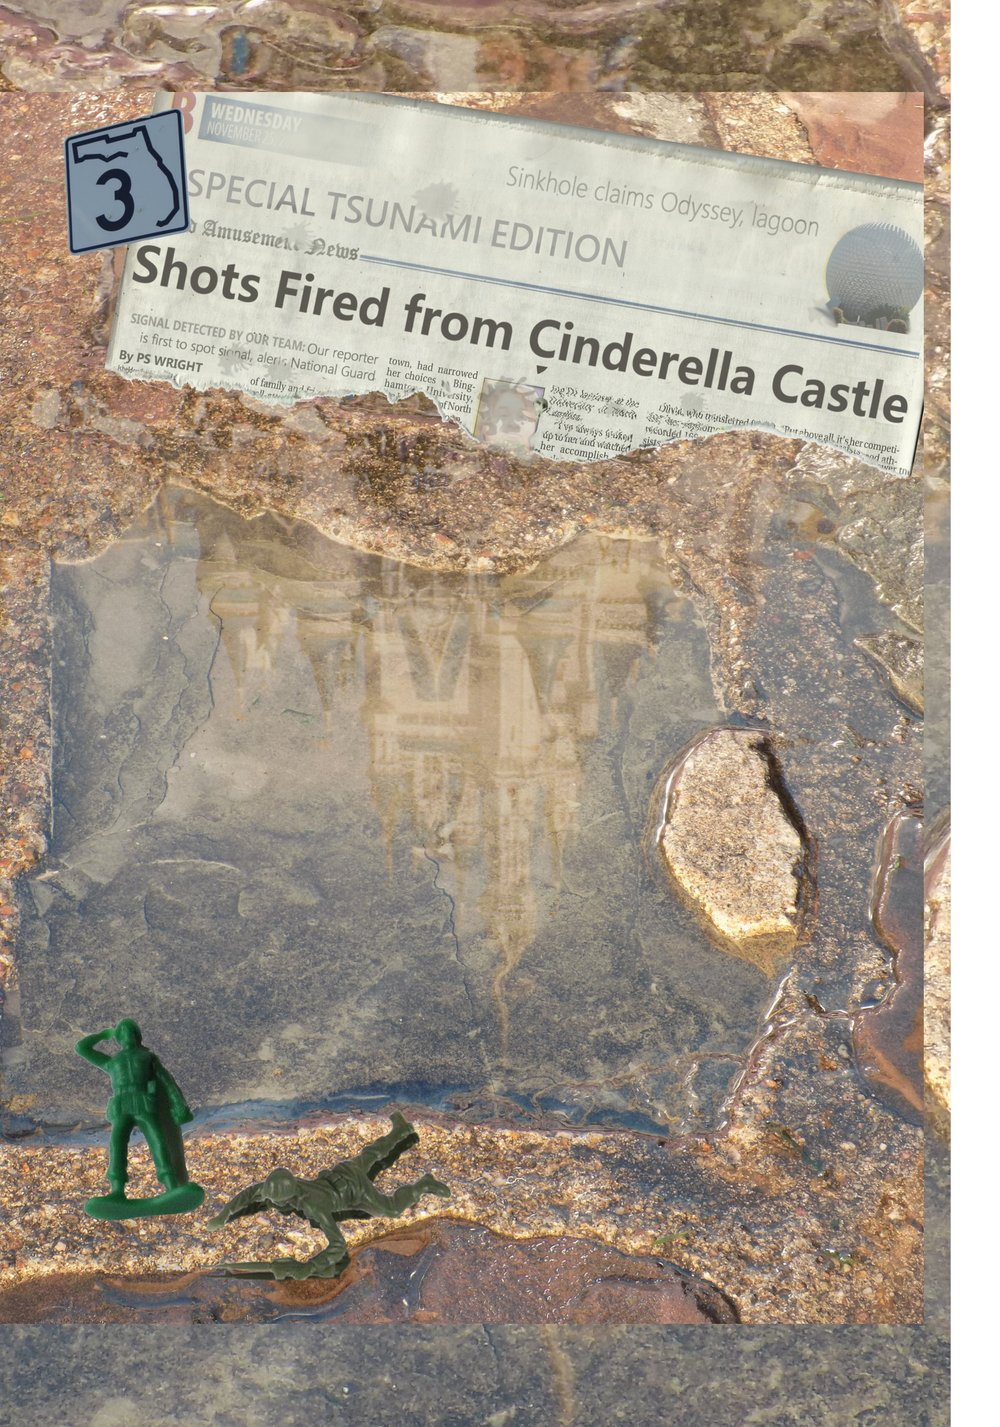 3 Shots Fired from Cinderella Castle